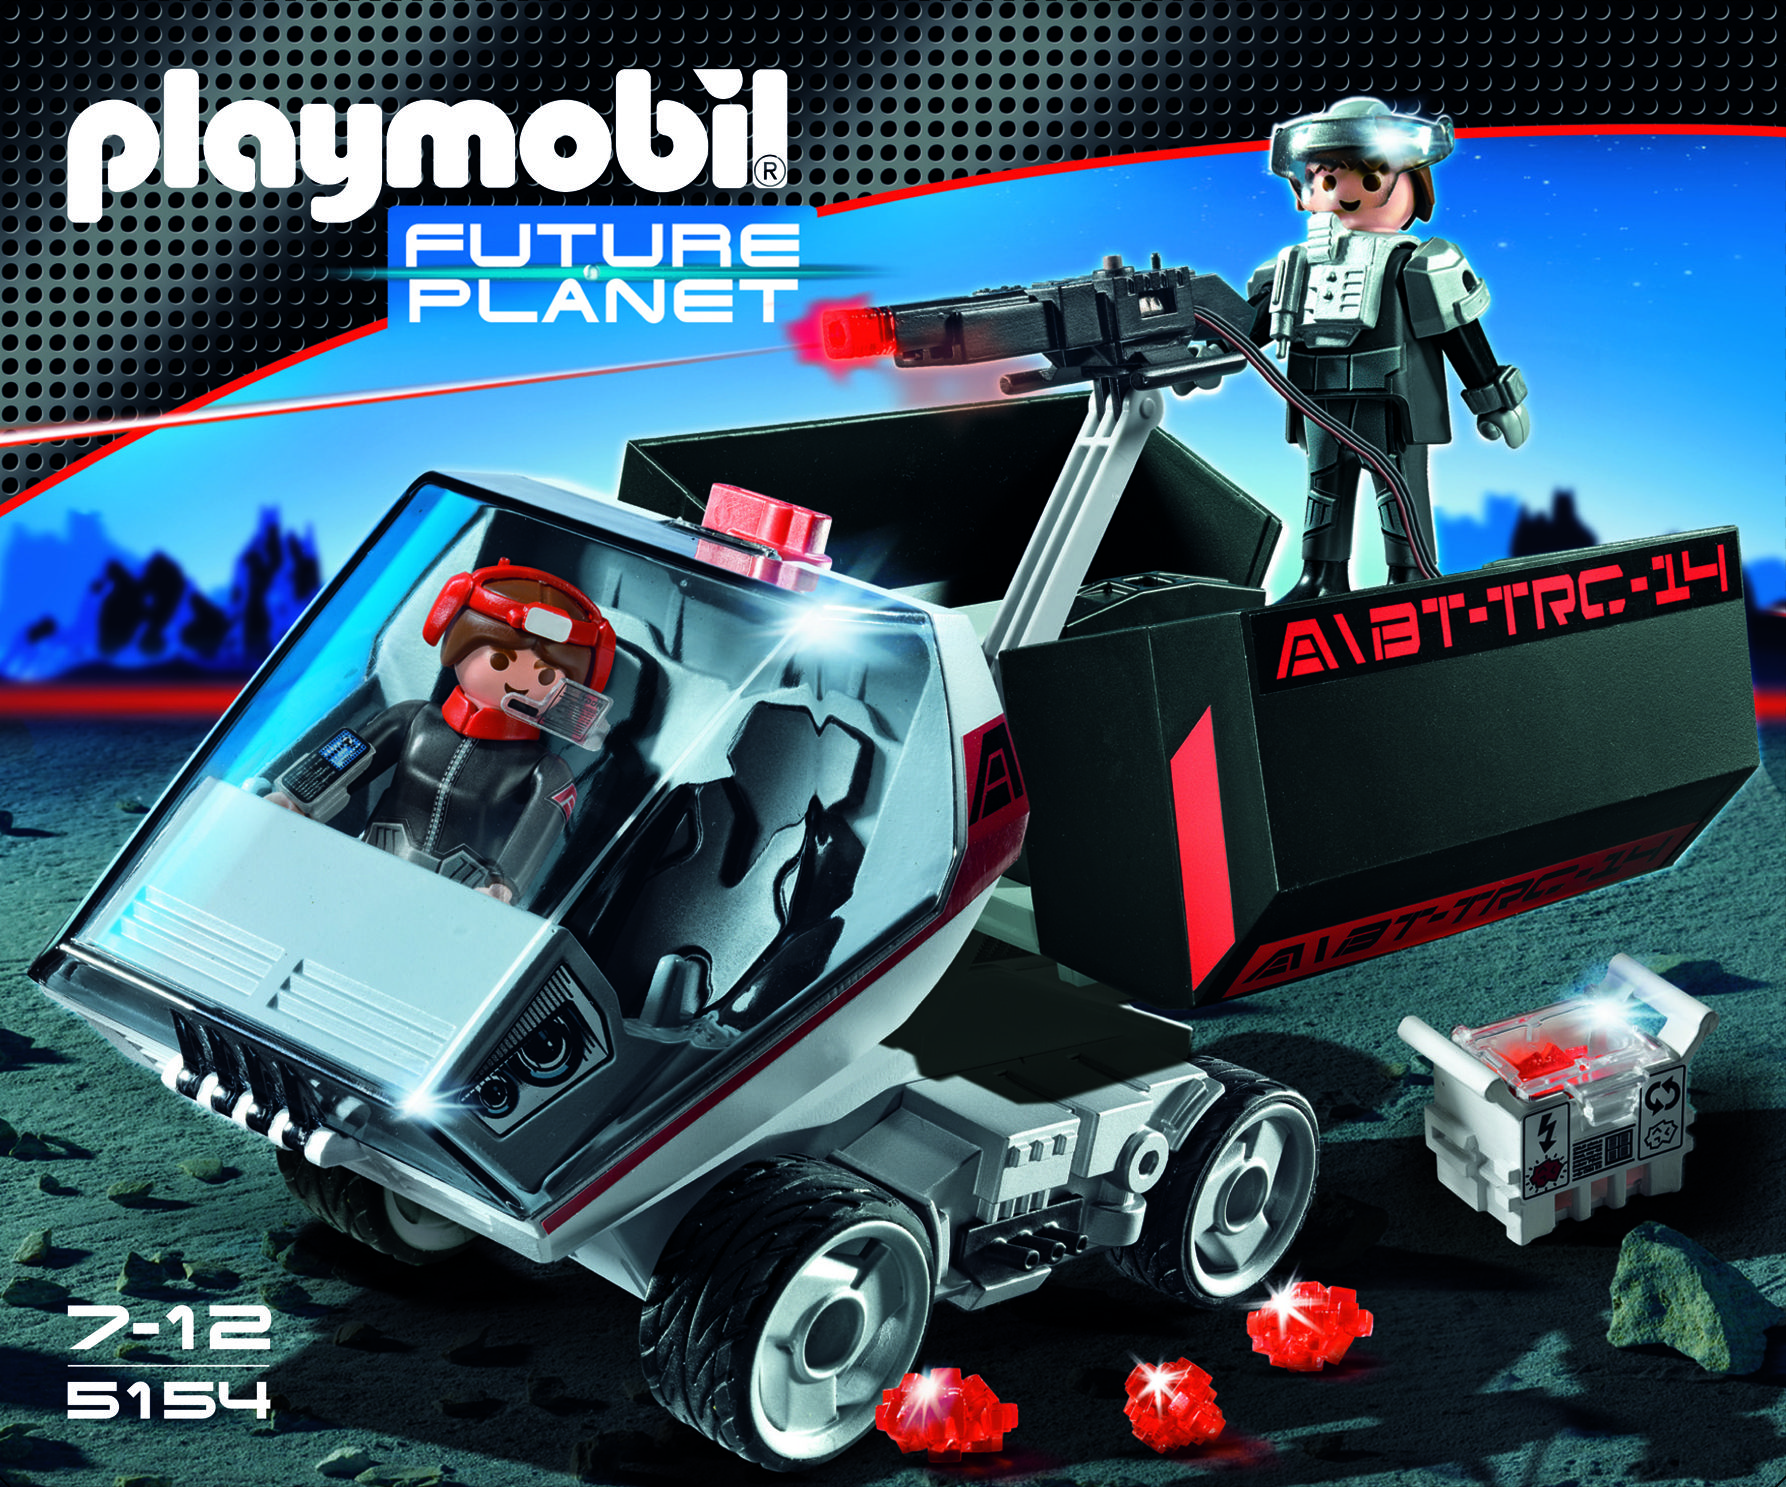 5156 Darkster Playmobil Future Planet